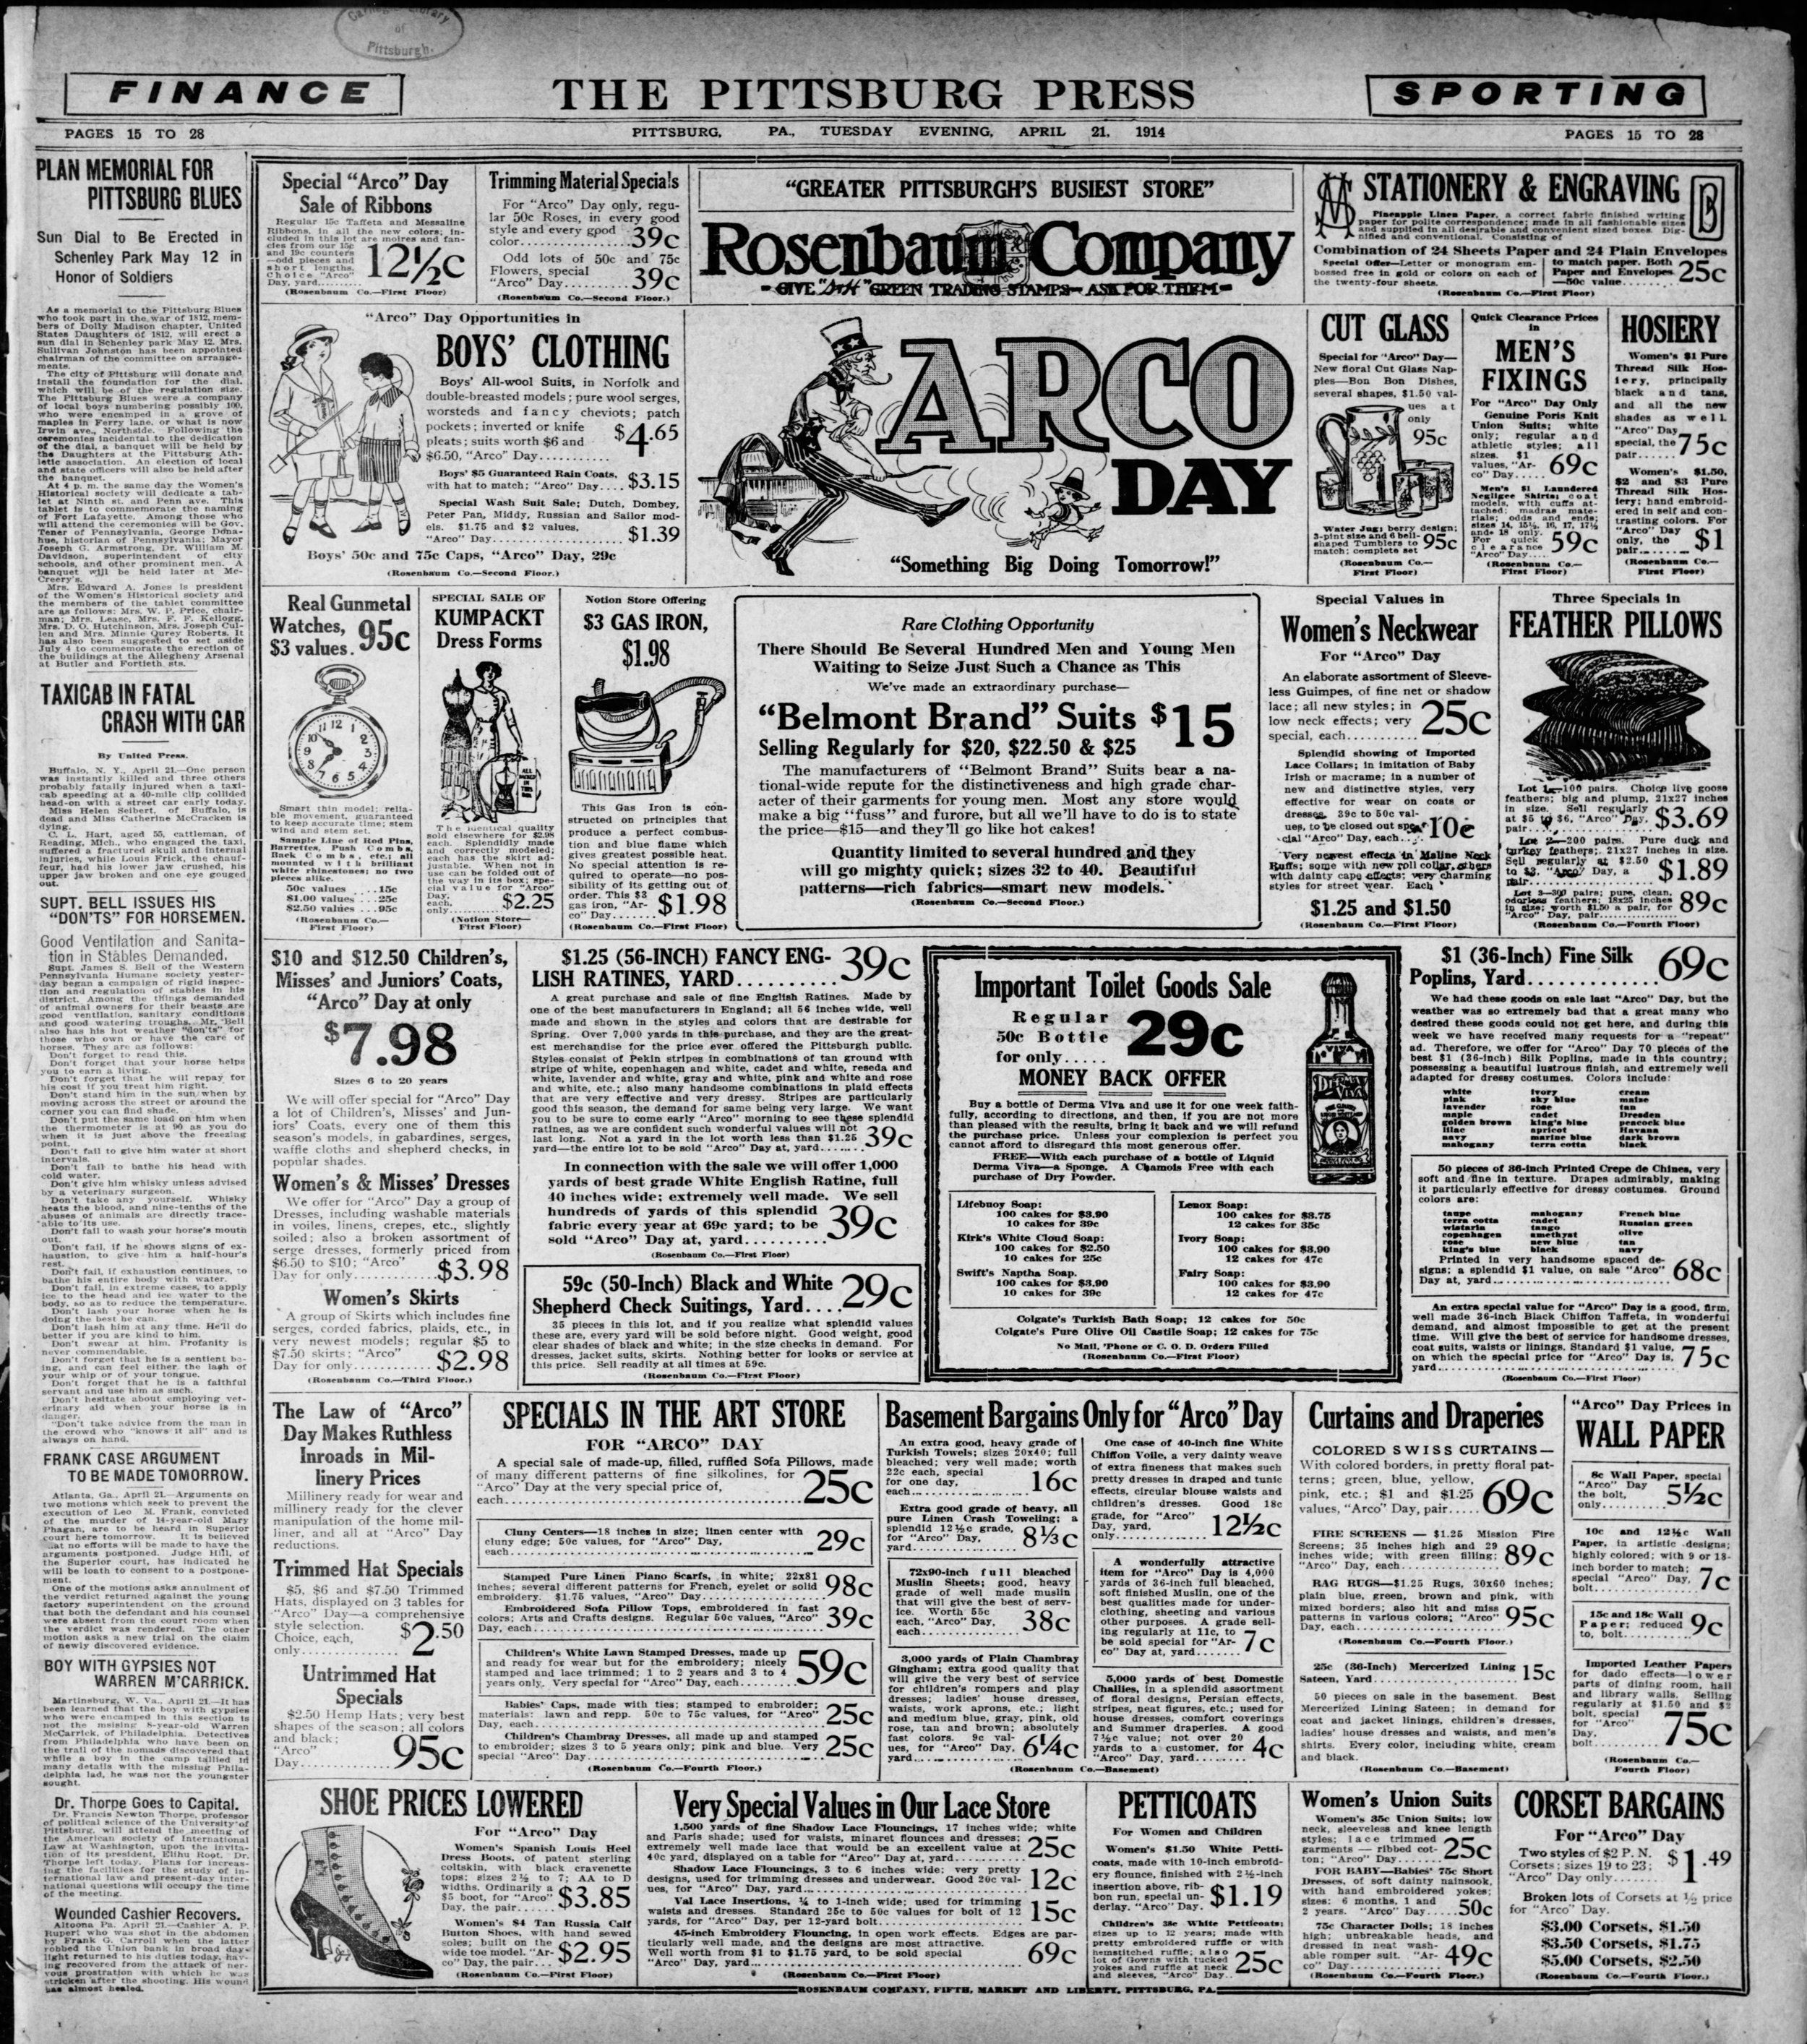 Digital copy of the newspaper found in the Coraopolis Station